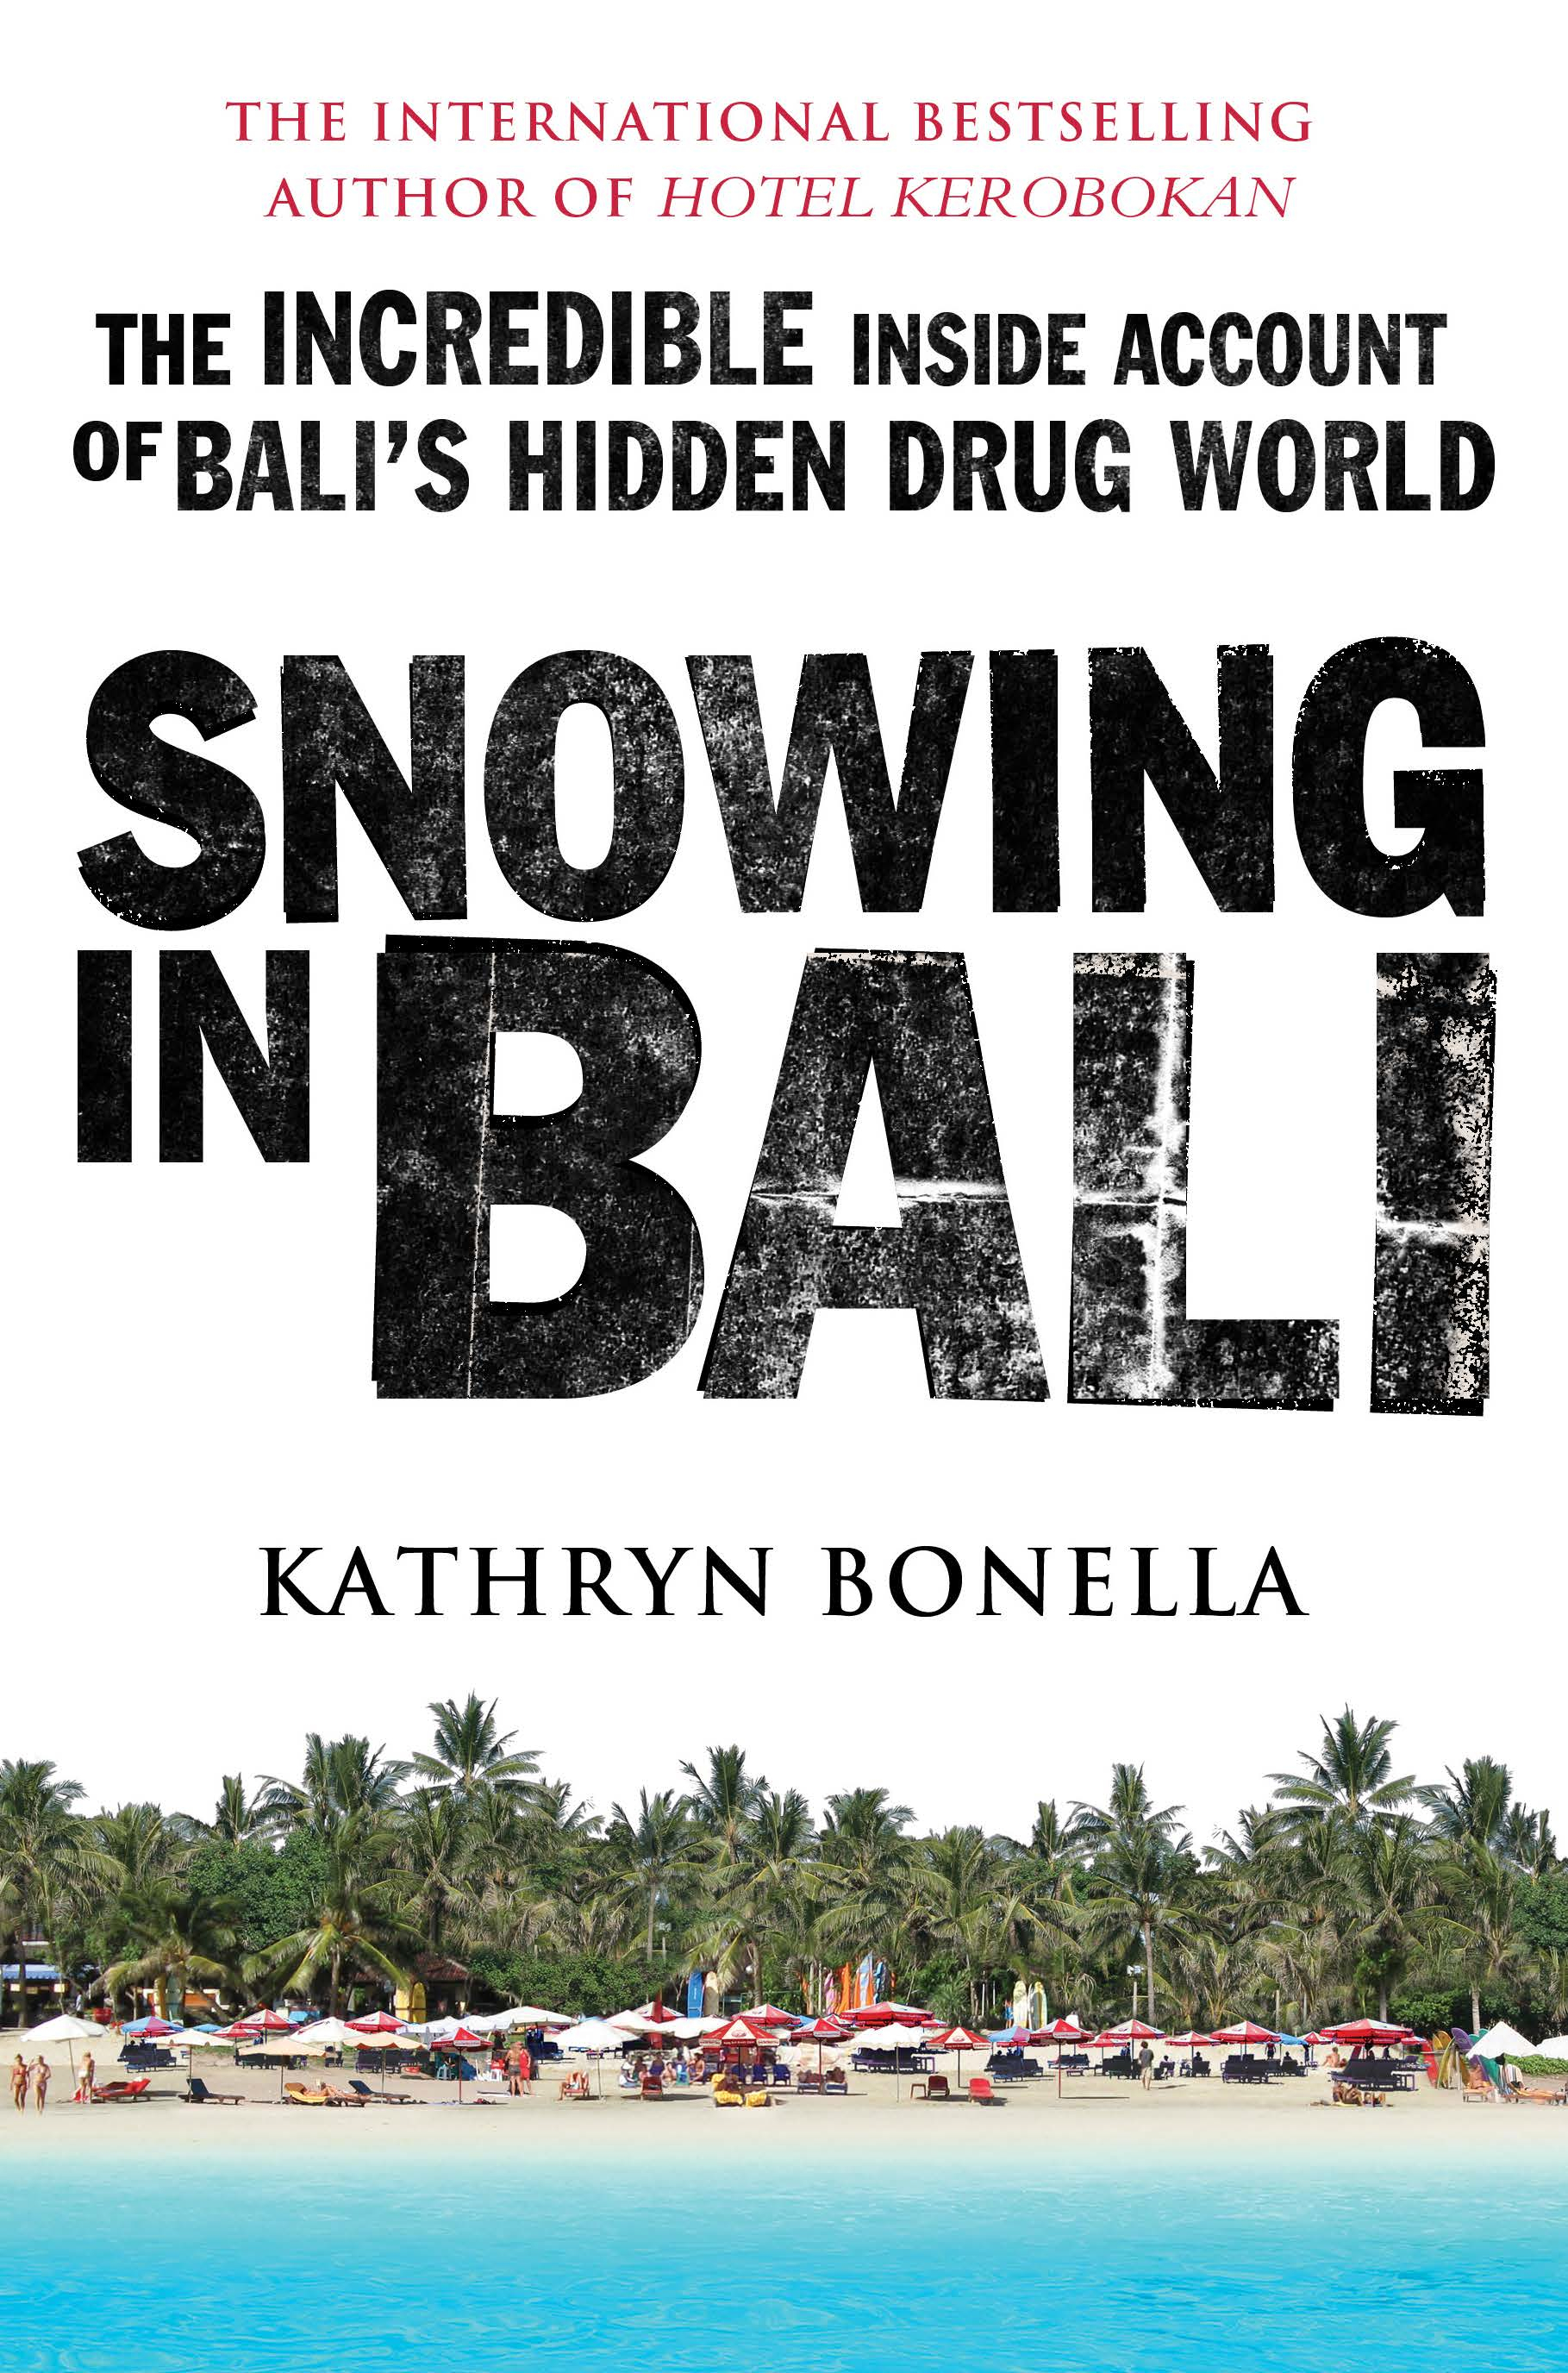 Snowing in Bali cover high res (front only)  copy